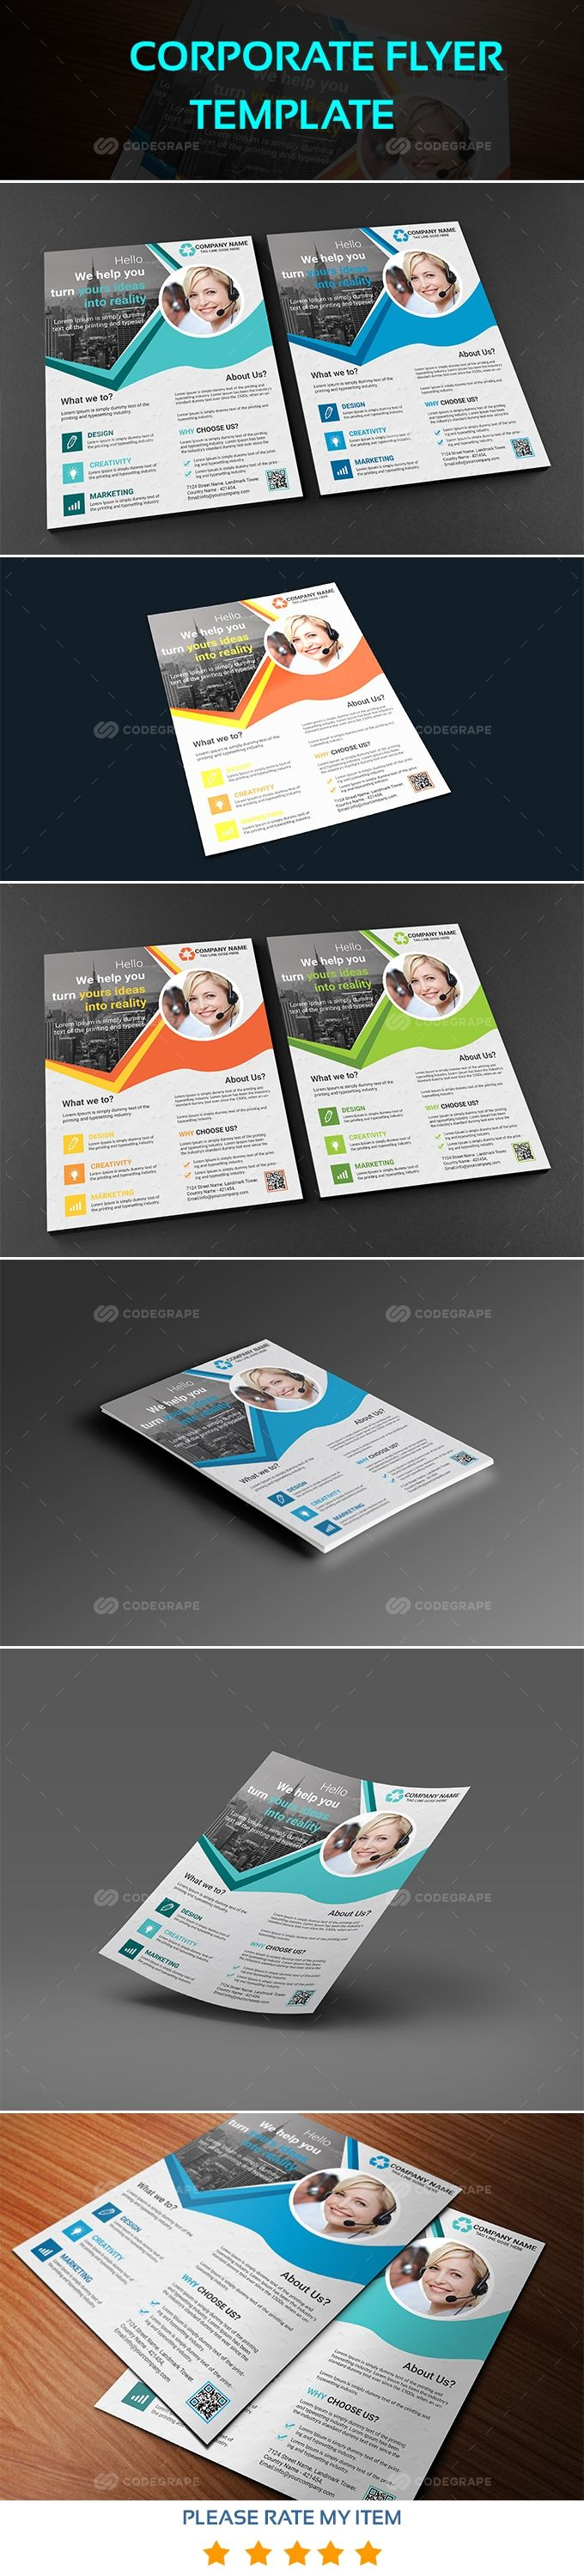 Corporate Flyer Template on @codegrape. More Info: https://www.codegrape.com/item/corporate-flyer-template/18068